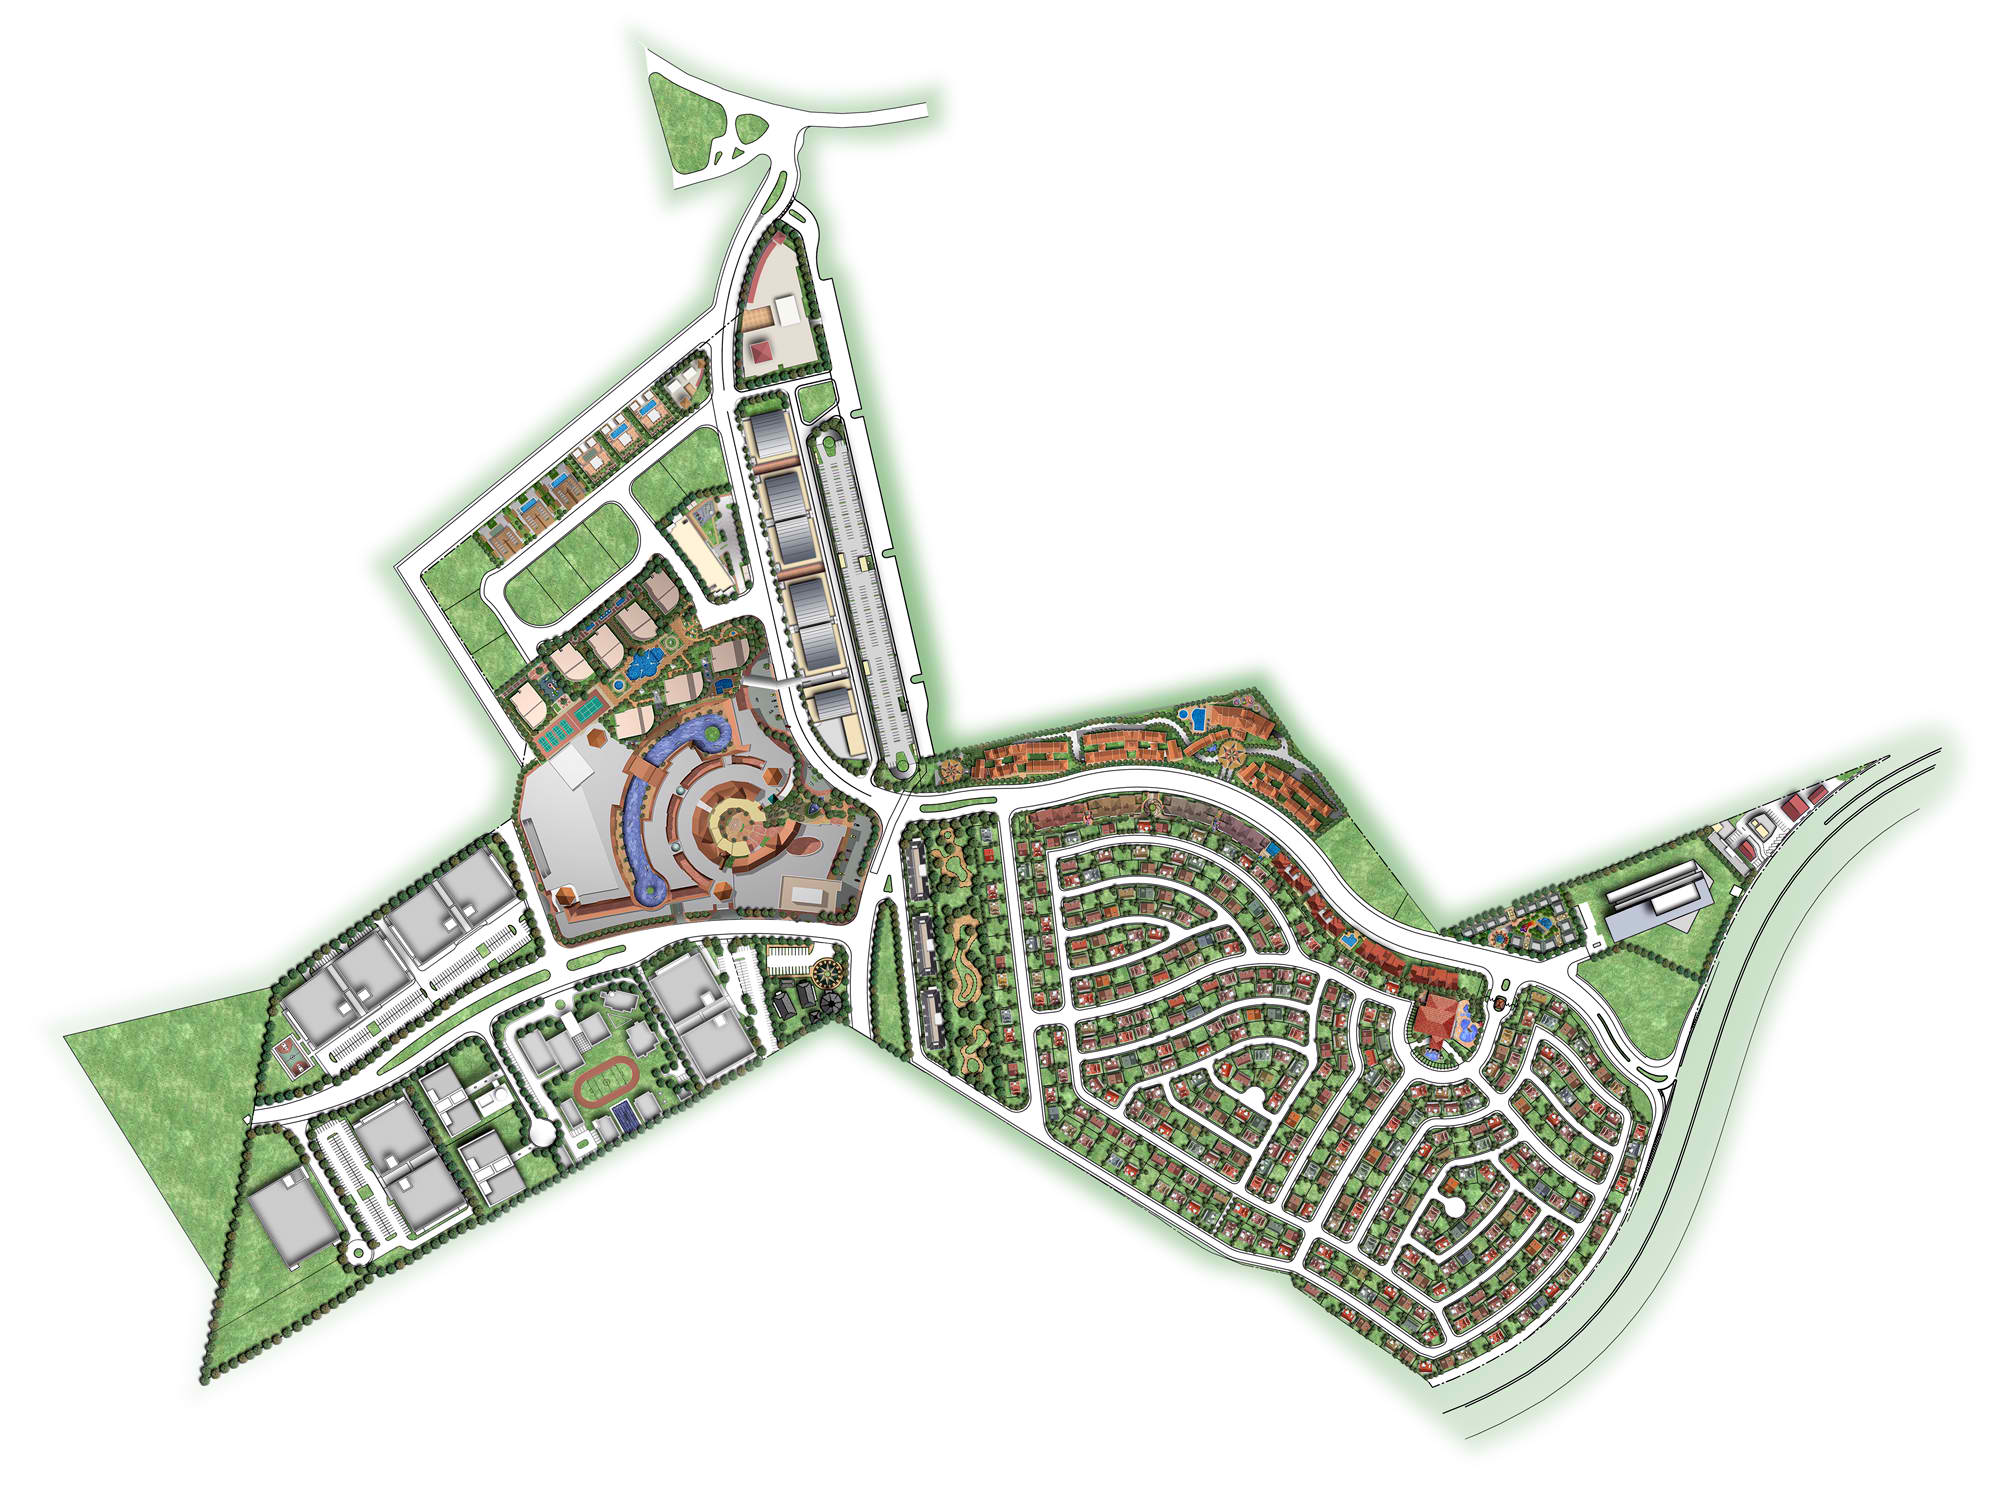 FOR SALE: Lot / Land / Farm Manila Metropolitan Area 4